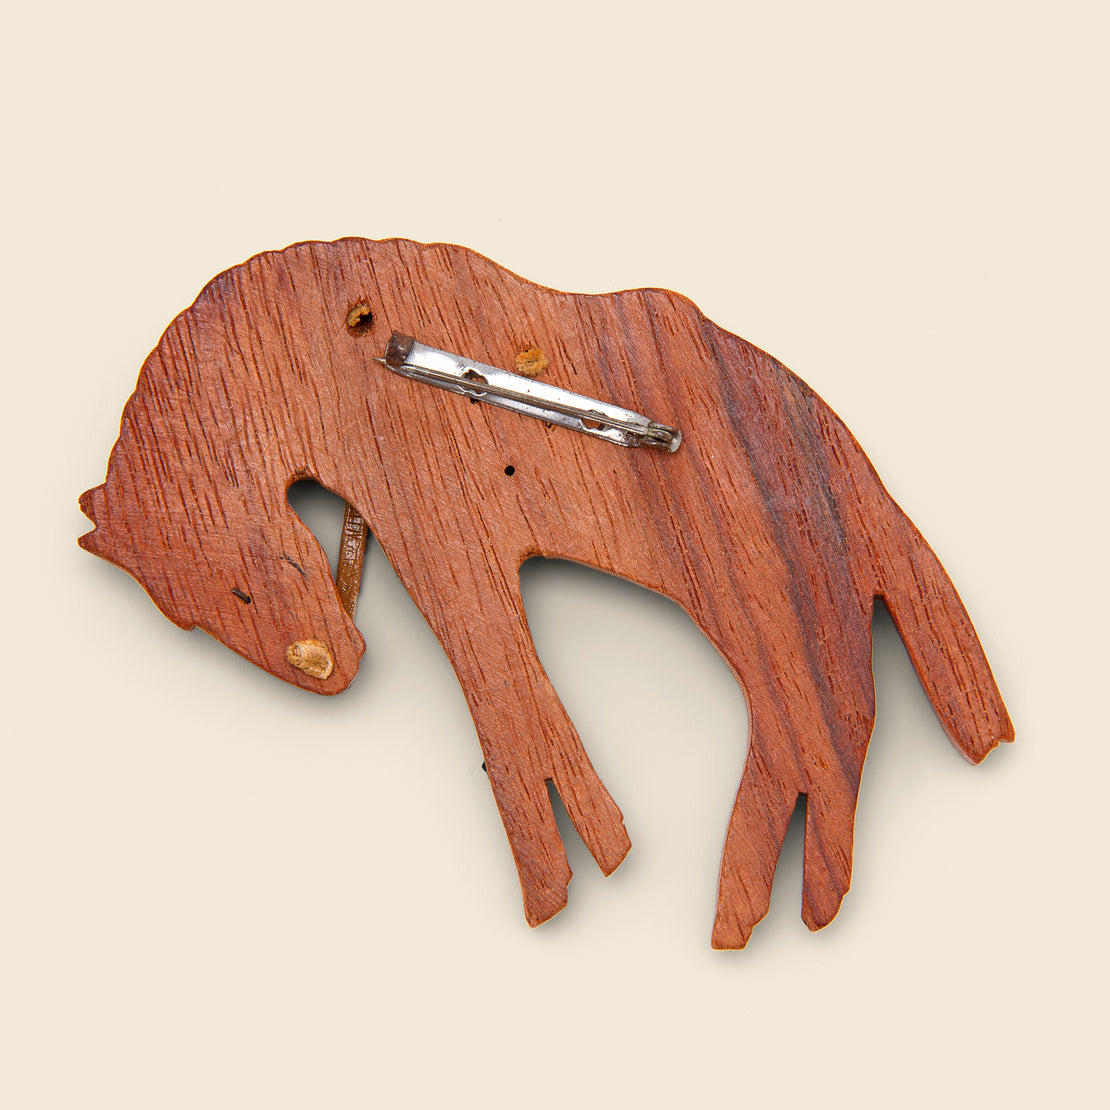 Wooden Bucking Bronco Brooch - Wood/Leather